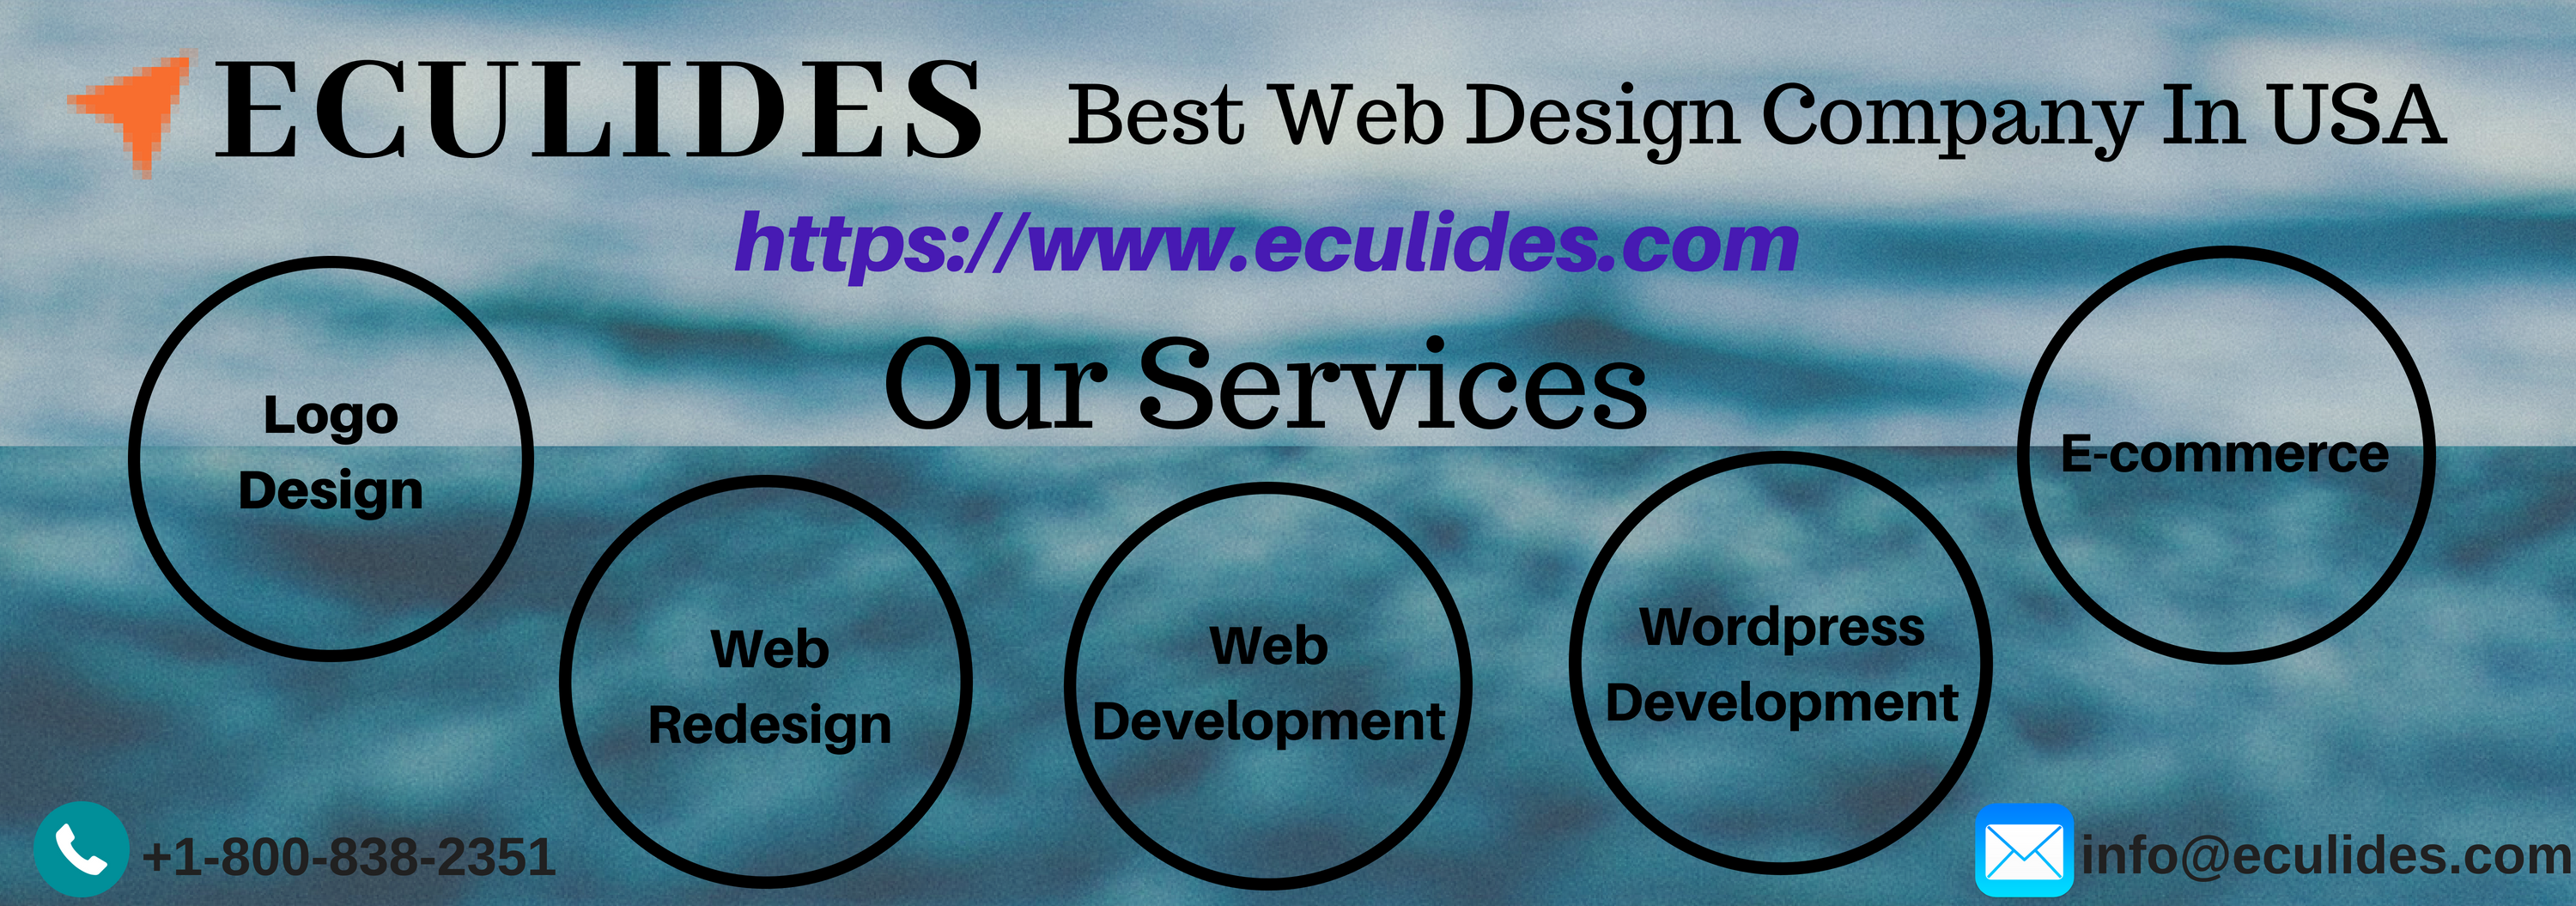 Top Web Development Company In The United States Dedicated Web Design Company With The Latest Optimization Techni Web Design Company Web Design Design Company